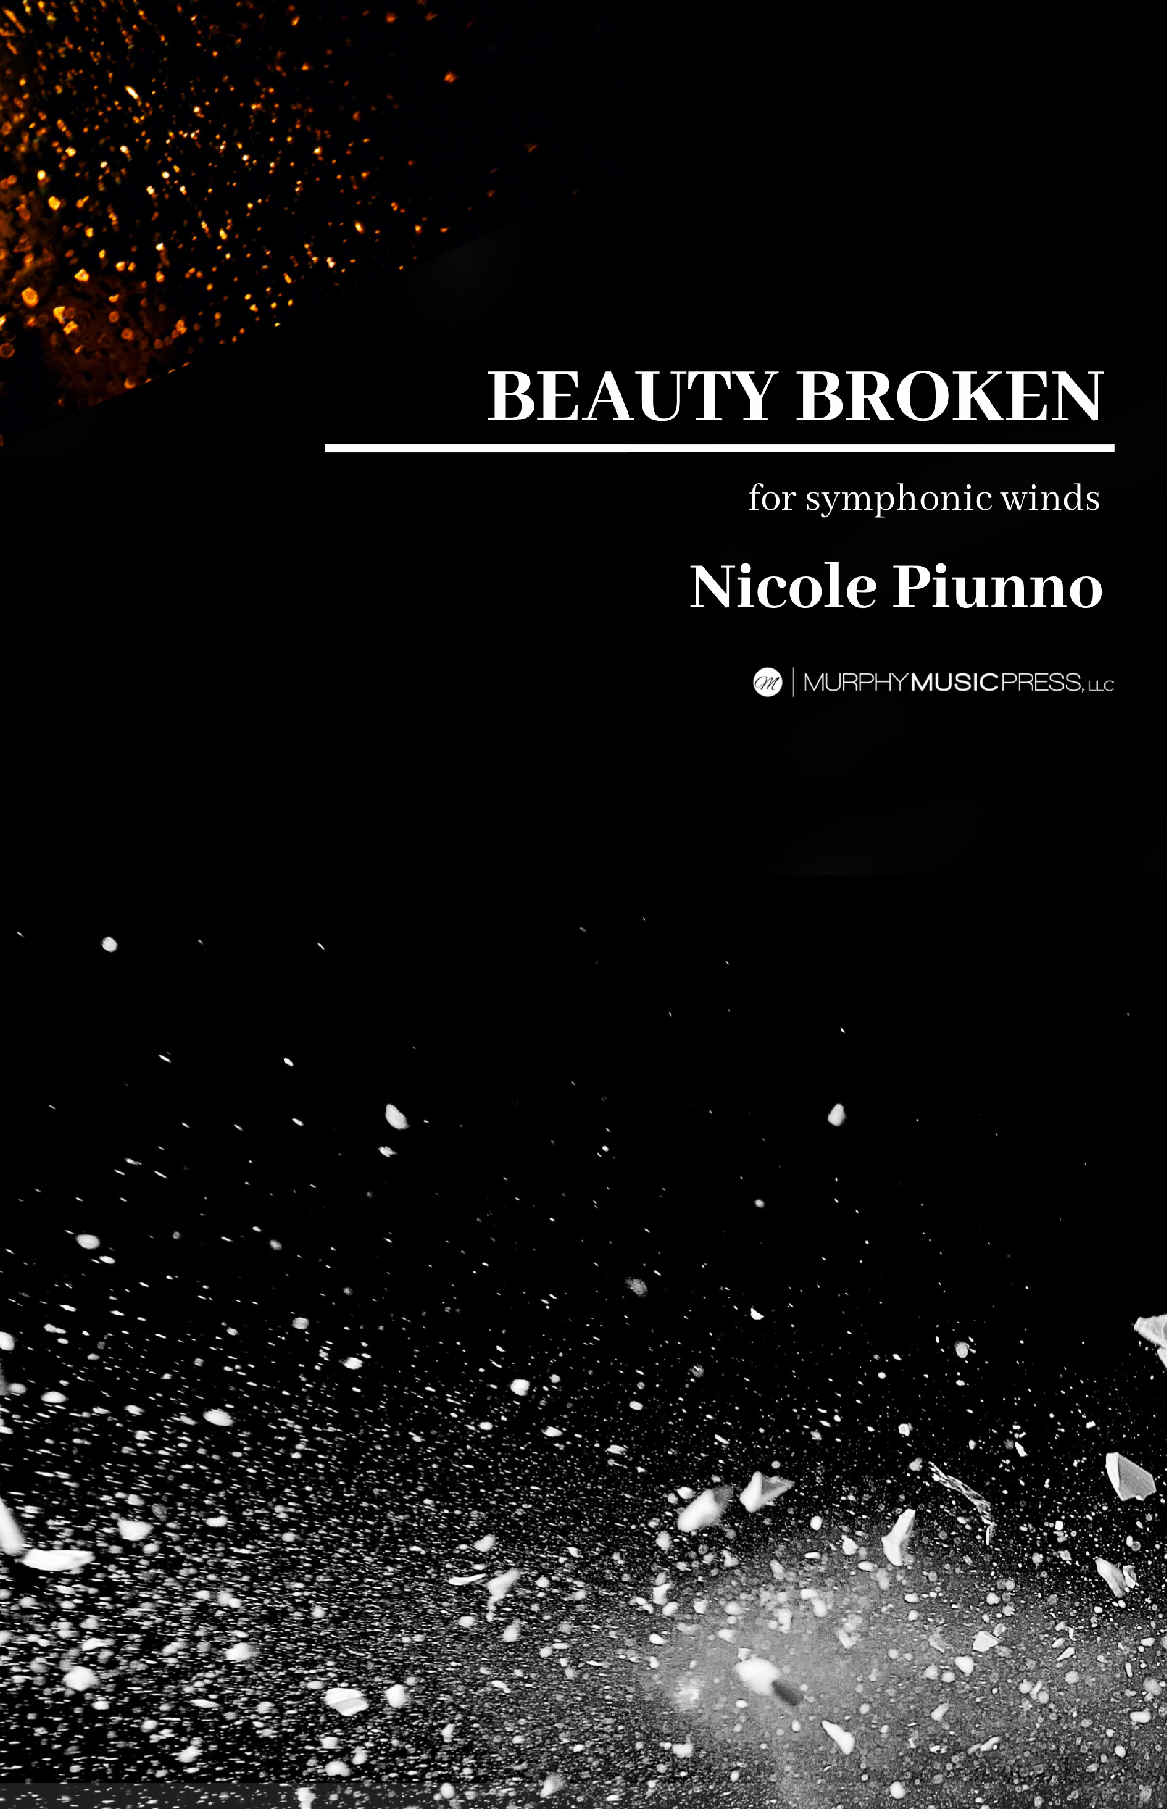 Beauty Broken  by Nicole Piunno